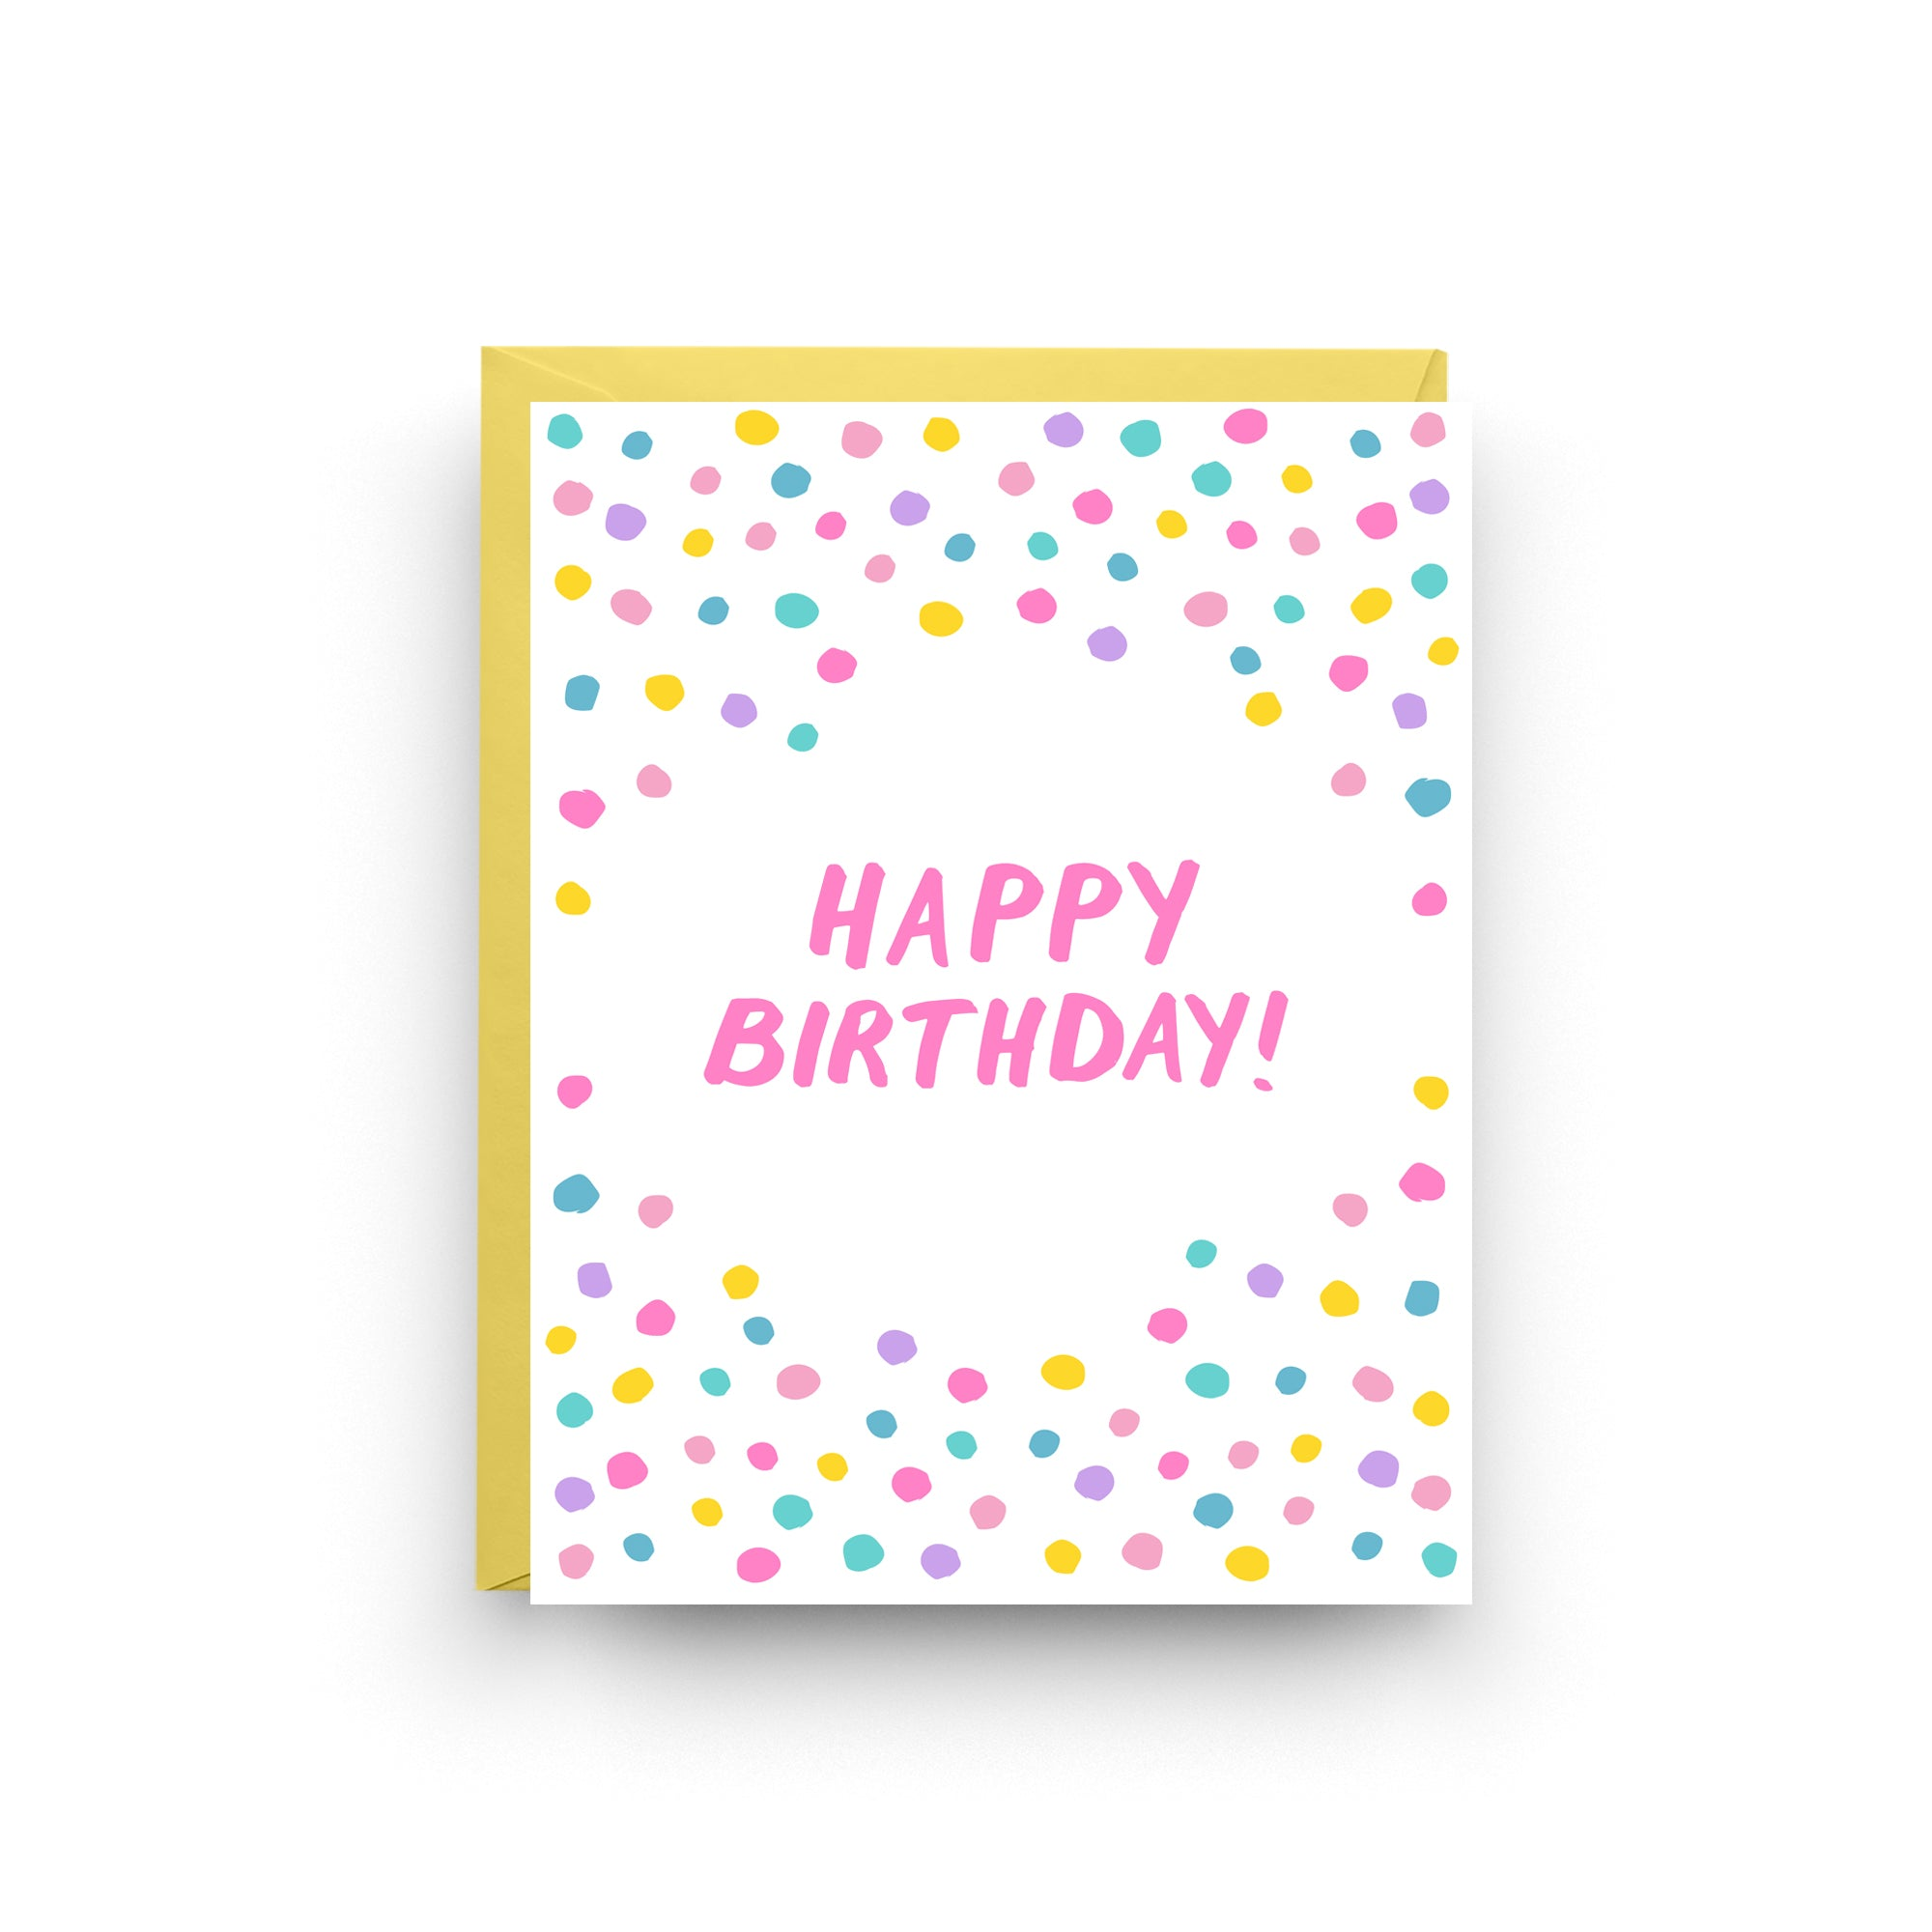 happy birthday card, birthday card, children birthday, happy birthday, cupcakes, cupcake, card for children, birthday, girl birthday card, pink birthday, birthday confetti, confetti card, boxed set